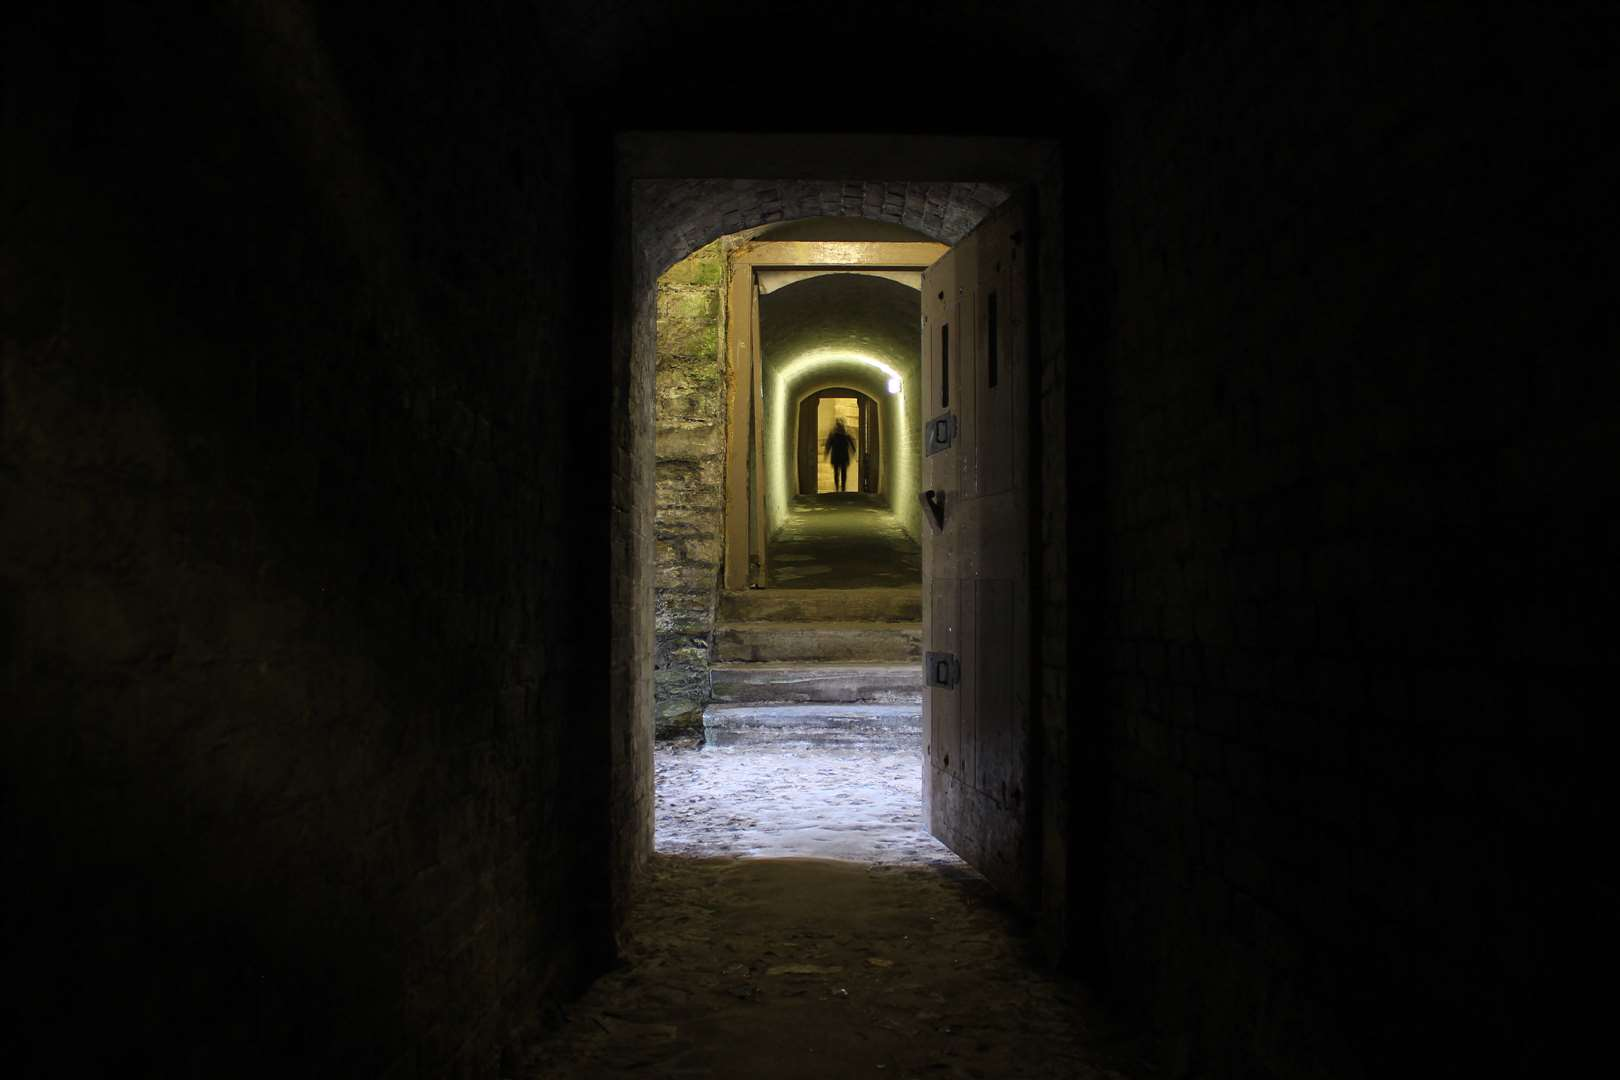 Dover Castle's medieval tunnels can feel unnerving if down there alone. Pic: Joe Wright